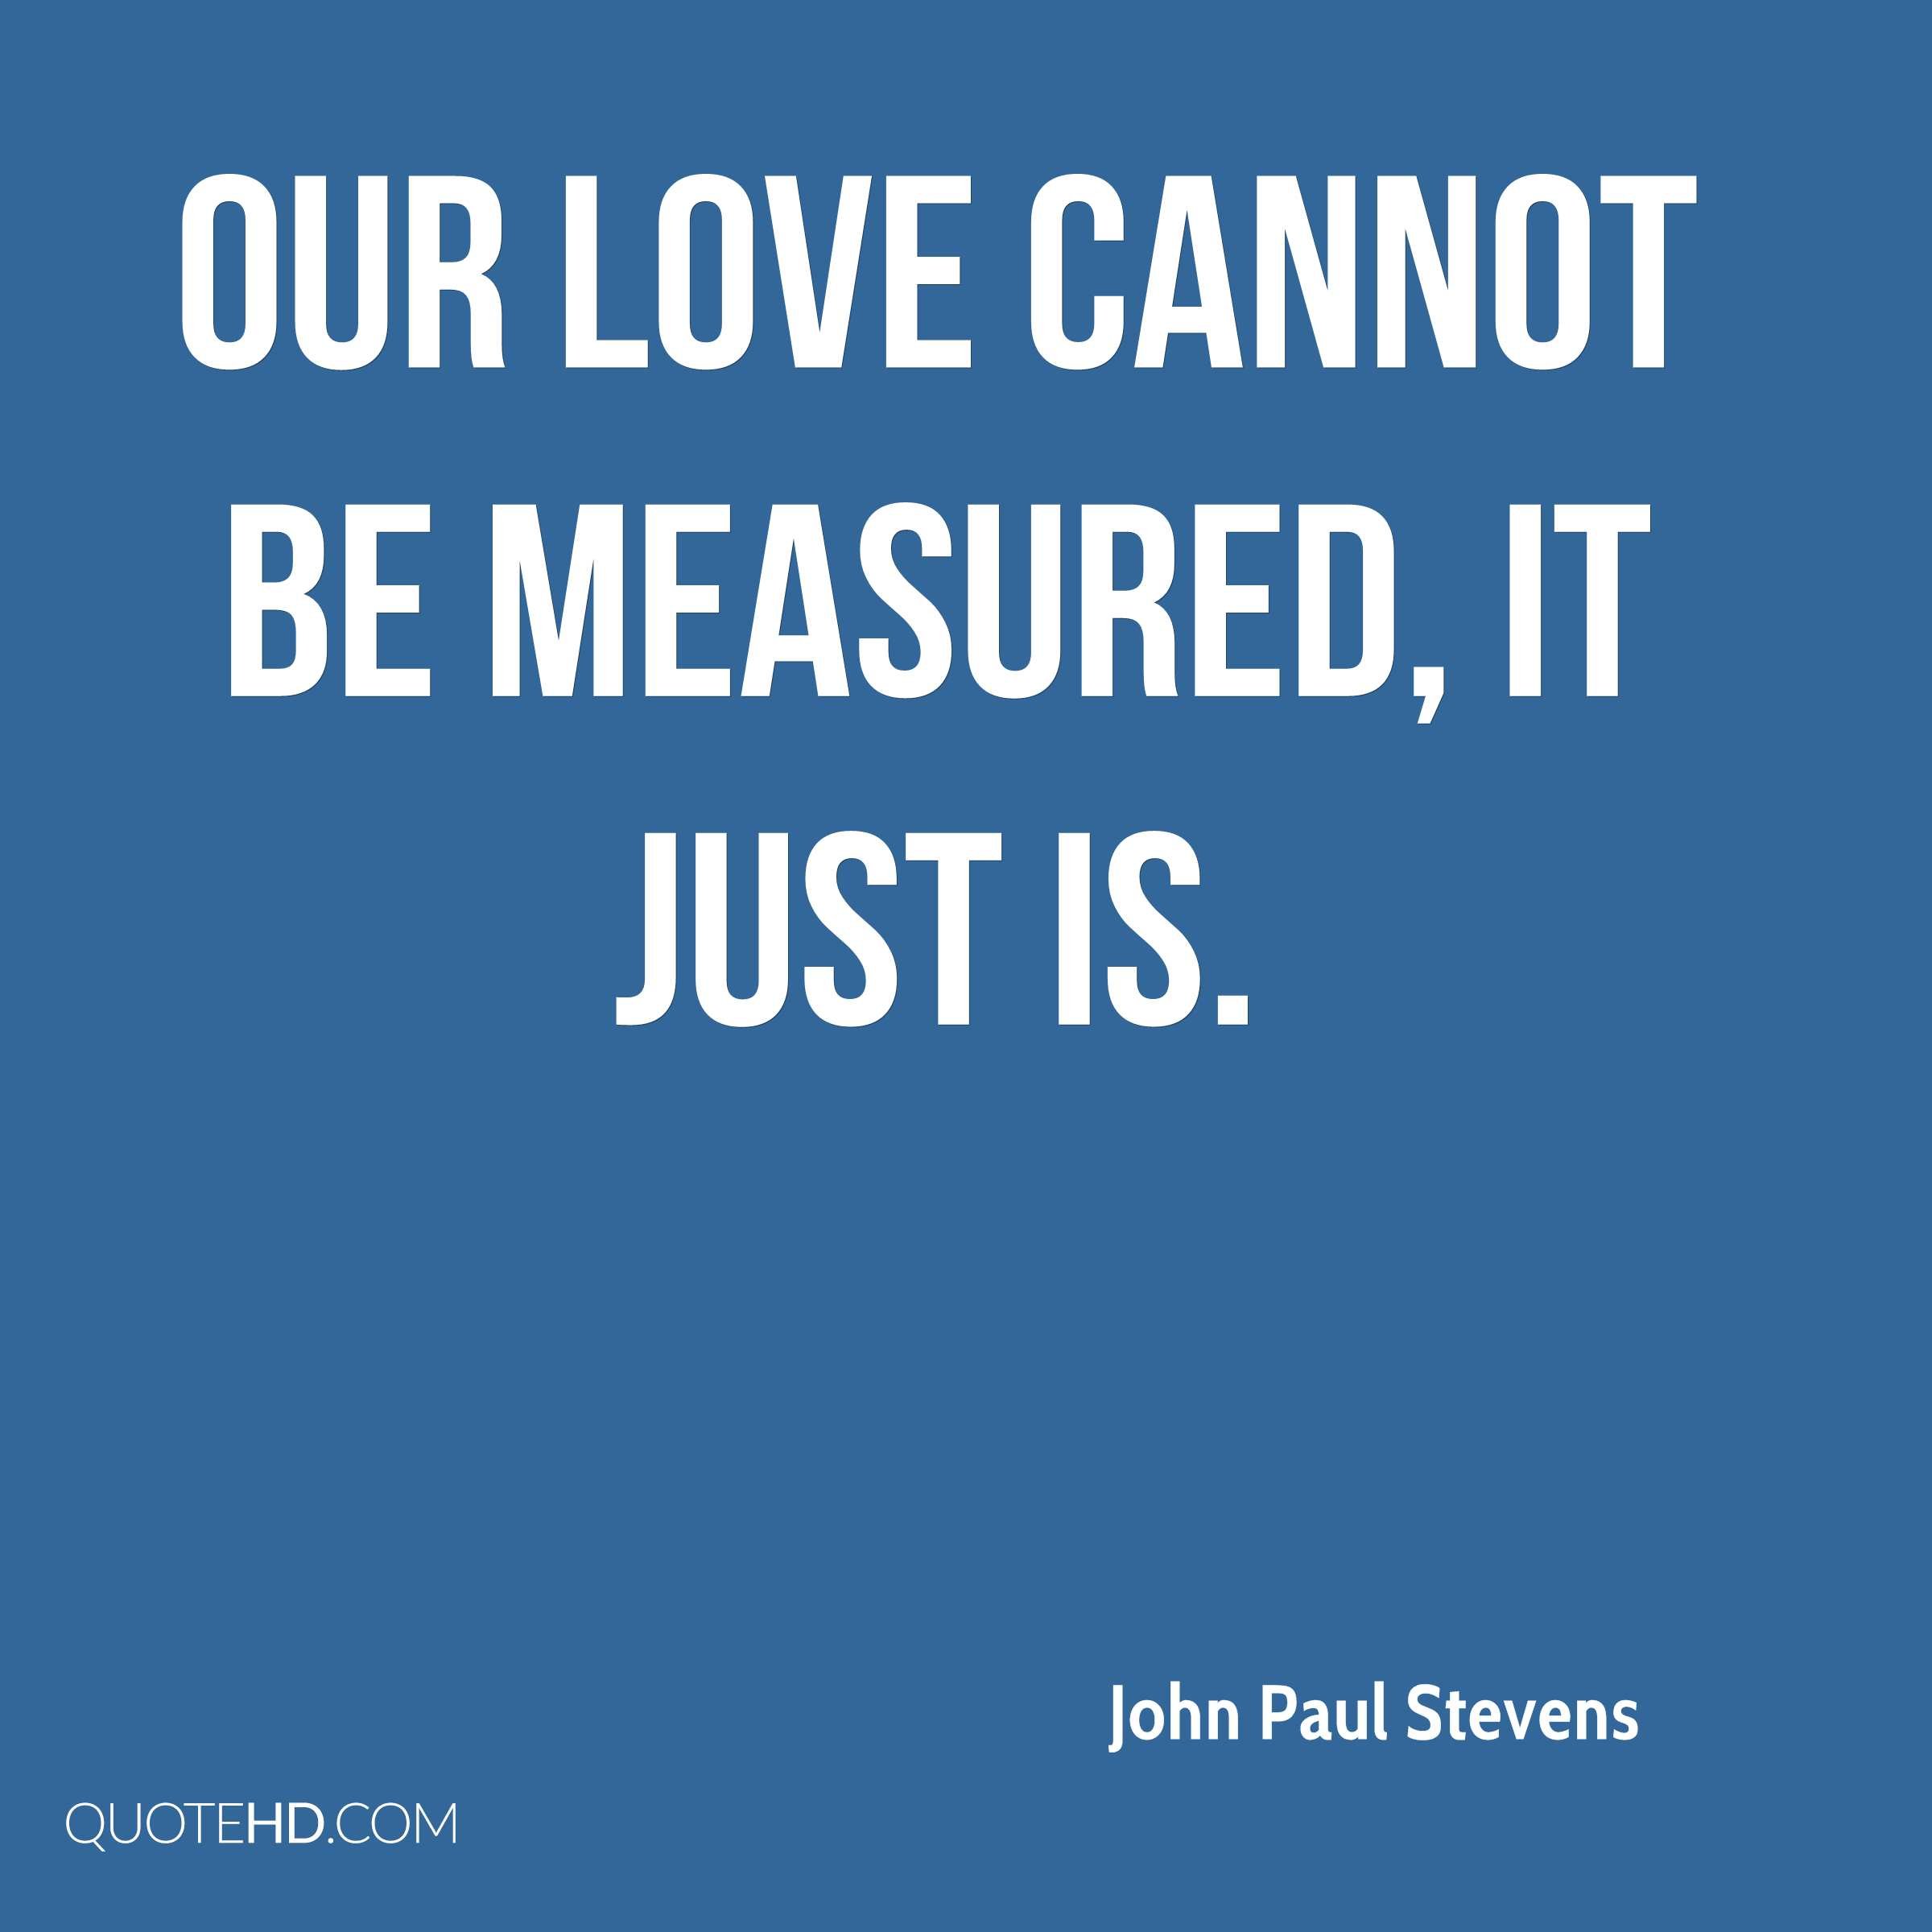 Our love cannot be measured, it just is.